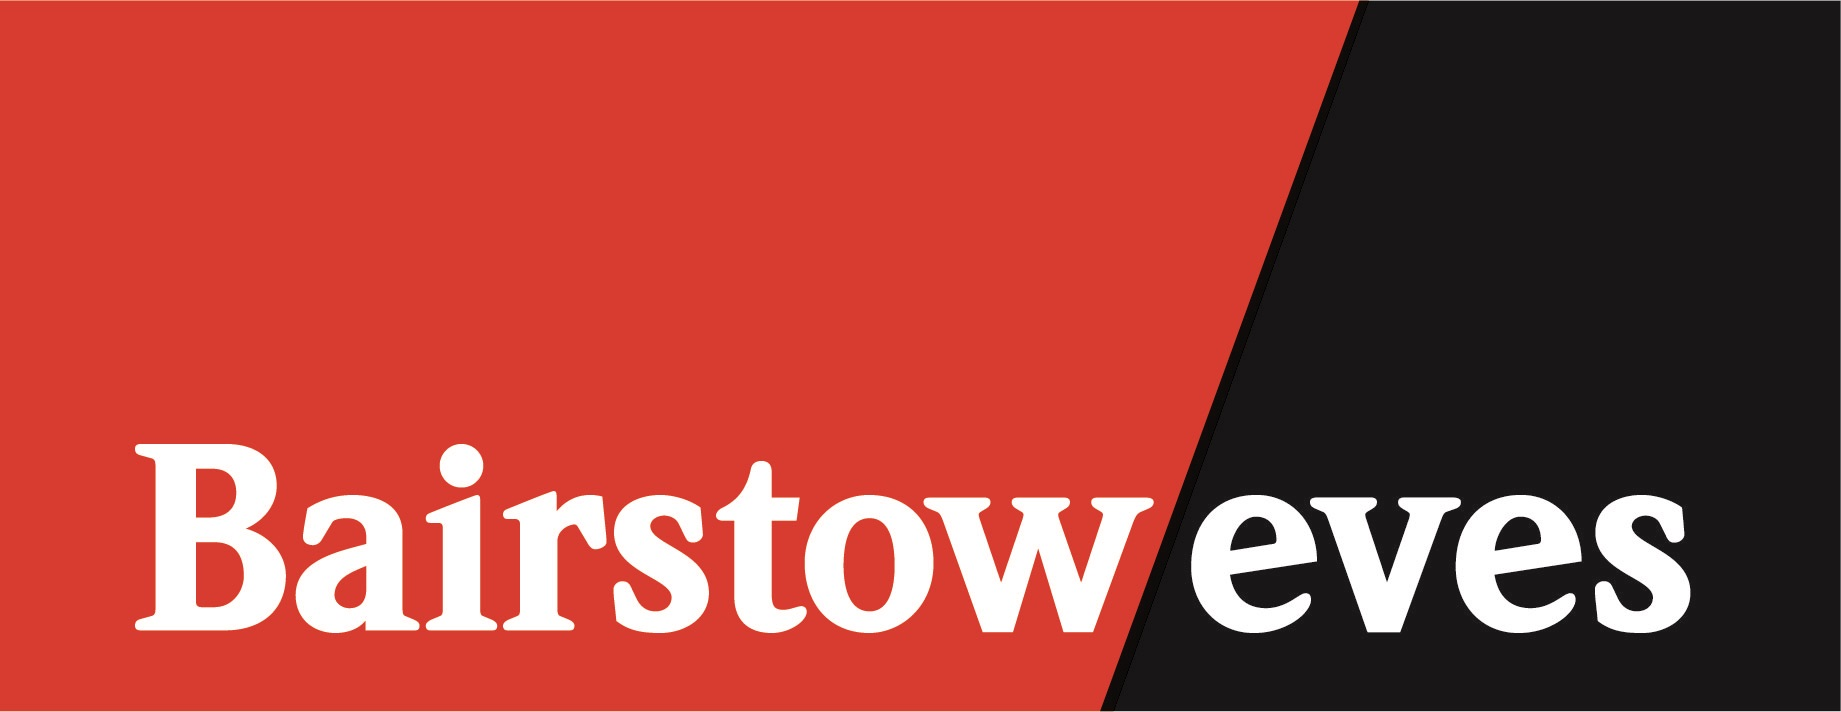 CW - Bairstow Eves - Coventry